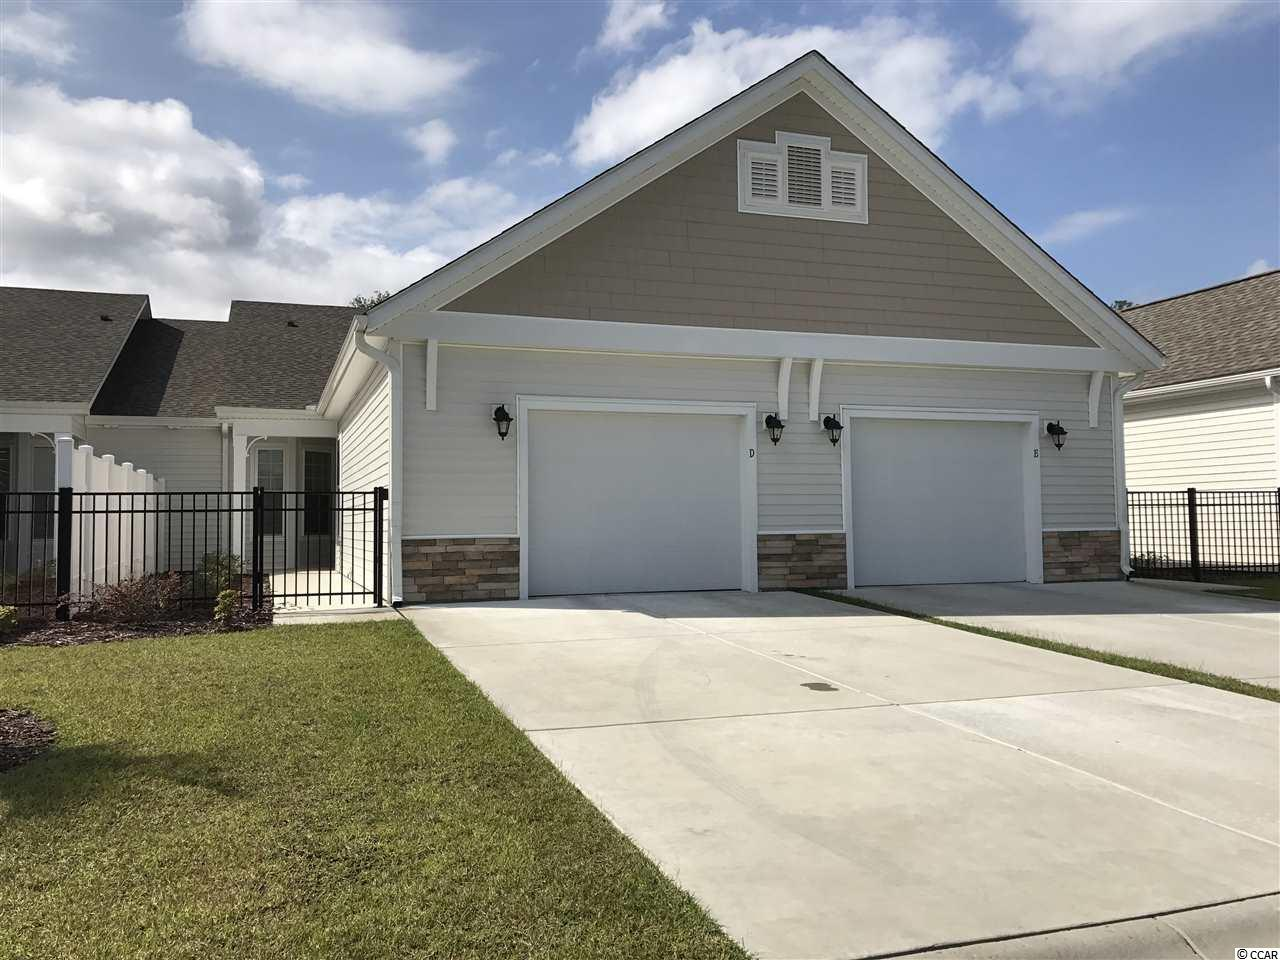 Townhouse MLS:1721763 Cameron Village - Garden Homes  2001 Lely Drive Myrtle Beach SC